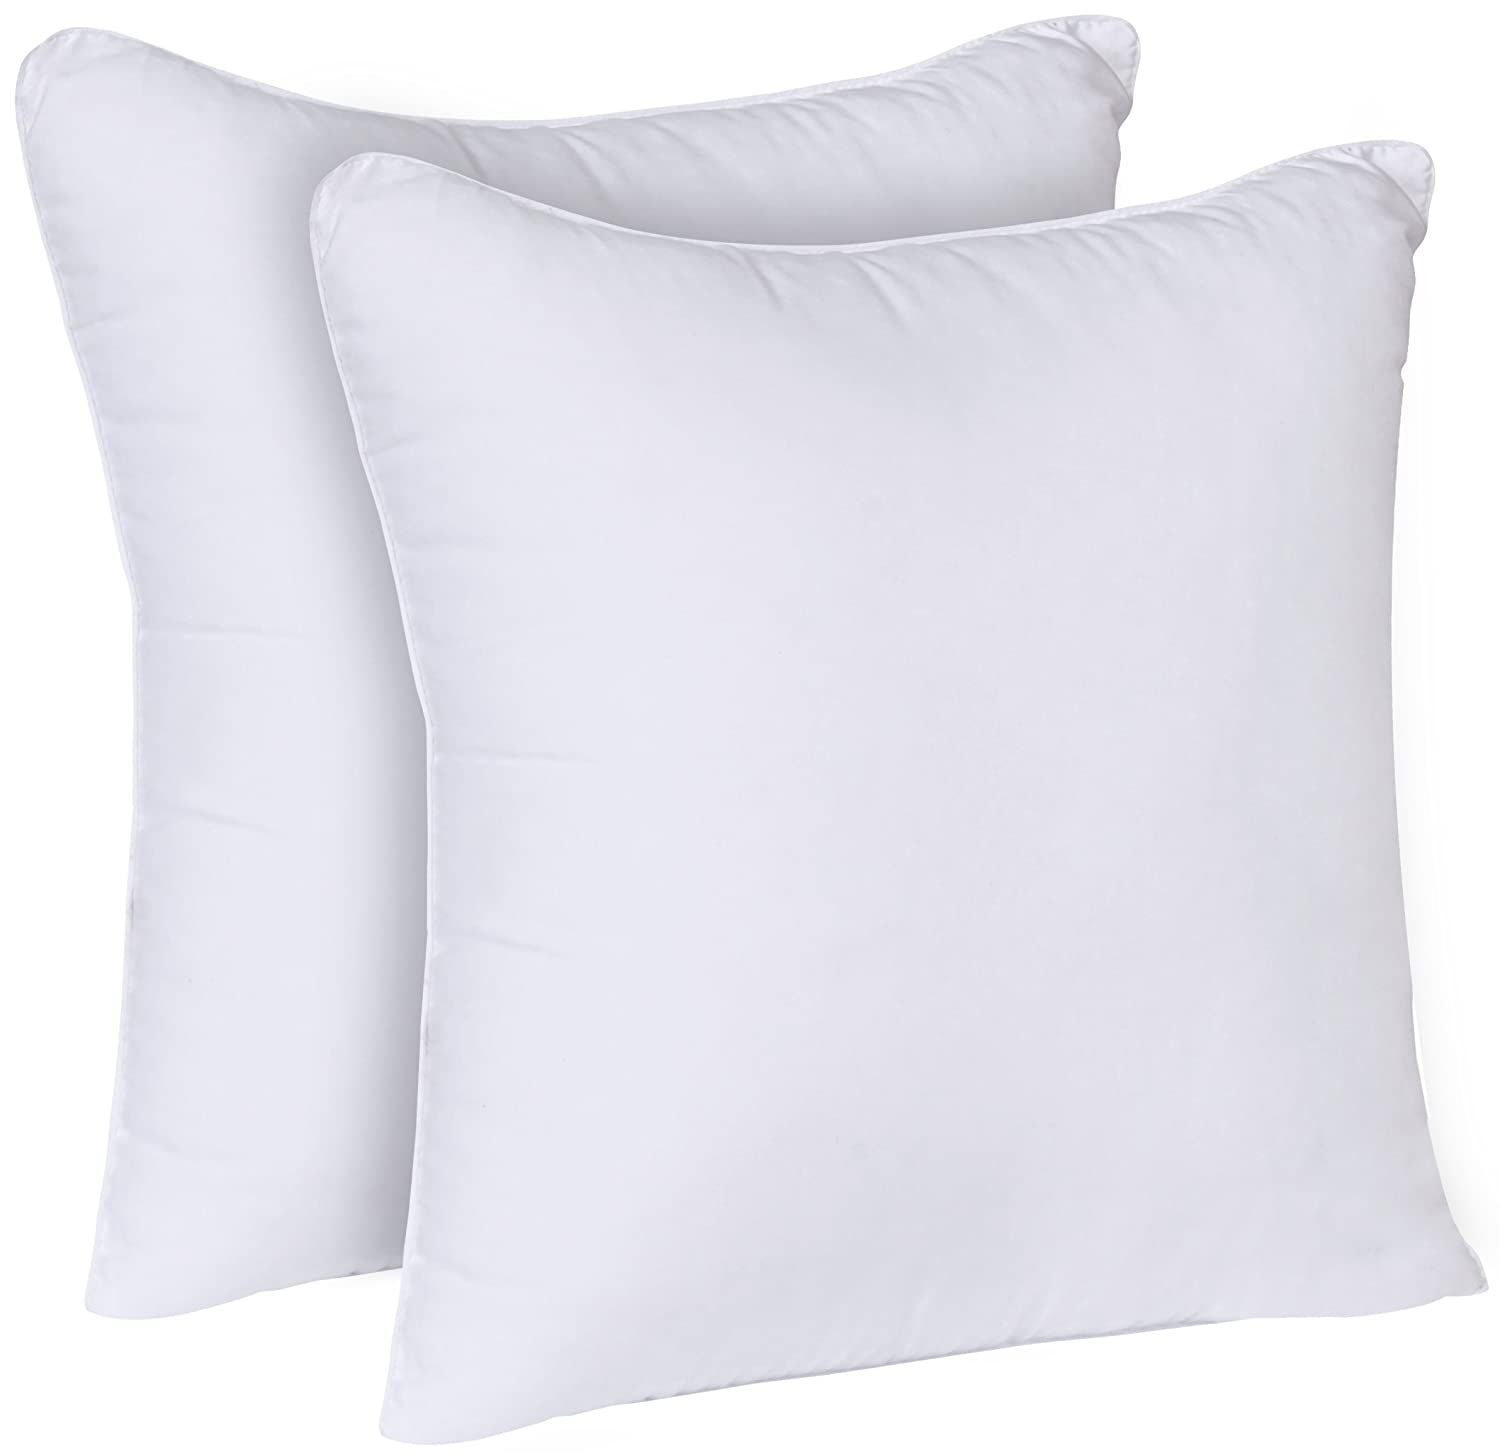 Utopia Bedding Decorative Pillow Insert (2 Pack, White) - Square 18x18 Sofa and Bed Pillow - Poly Cotton Cover - Indoor White Pillows FBA_COMIN18JU076864